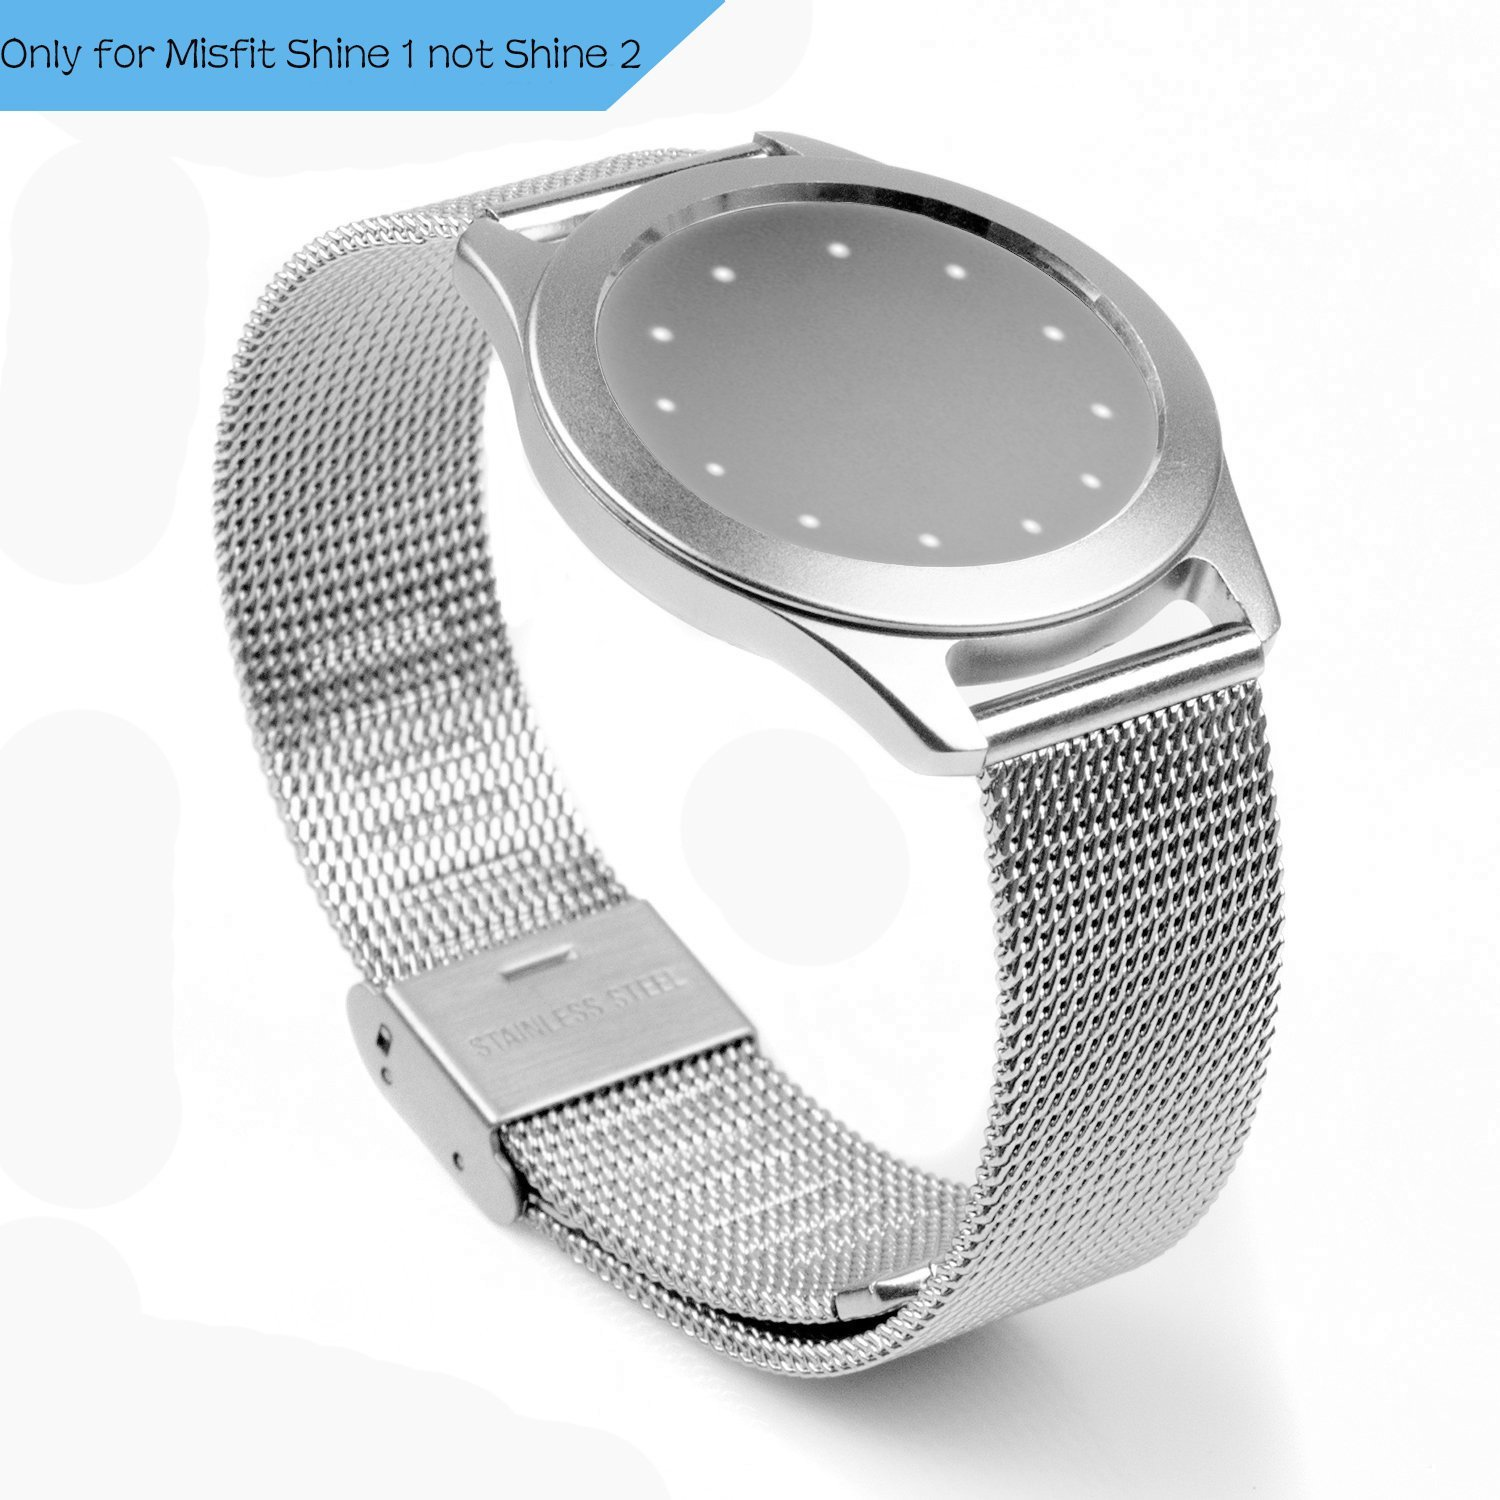 Misfit Shine Band, PUGO TOP Milanese Mesh Strap Band with Buckle for Activity and Sleep Monitor Misfit Shine ( Only for Misfit Shine 1 not Shine 2 )